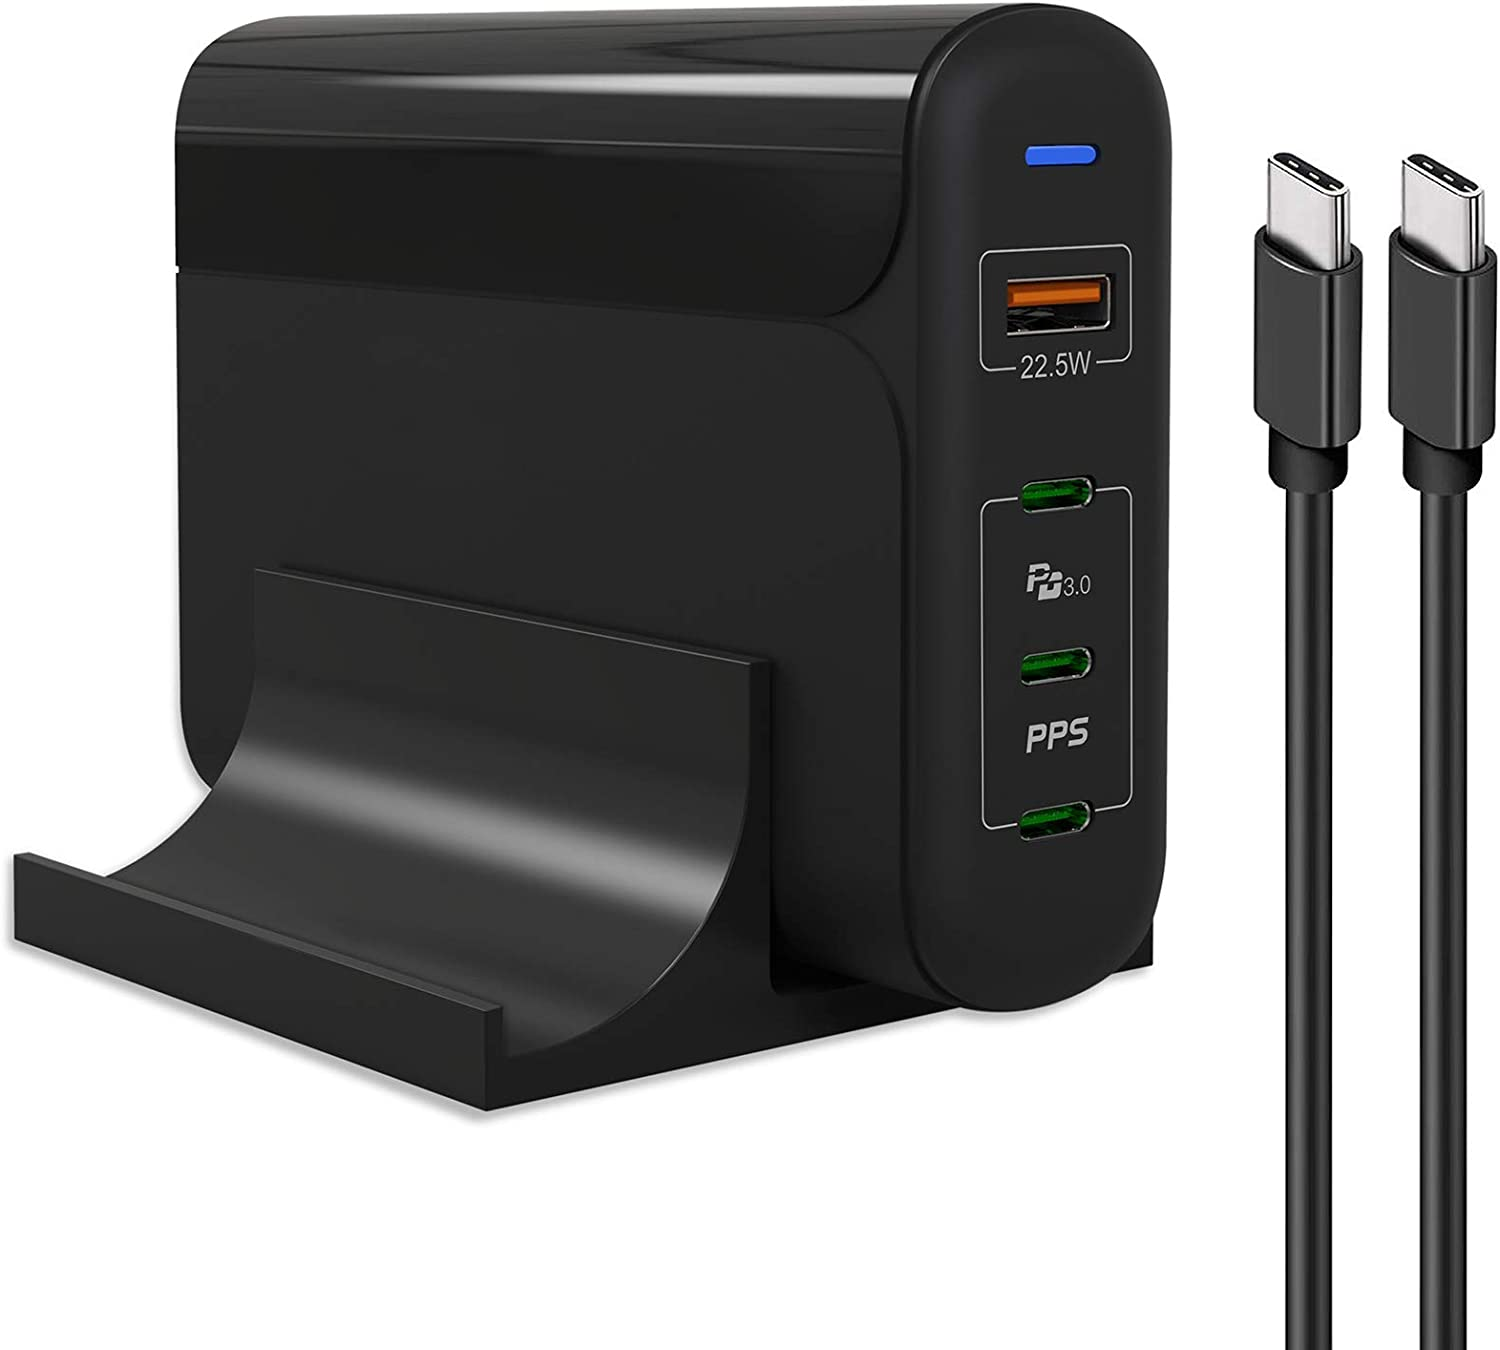 USB C Charger 150W HUNDA 4-Port USB C Desktop Charger with 3 USB-C Power Delivery PPS 4+ & 1 USB 3.0 Fast Charging Station Compatible with iPad,iPhone,Galaxy,MacBook,Pixel(1 USB C Cable Offer)